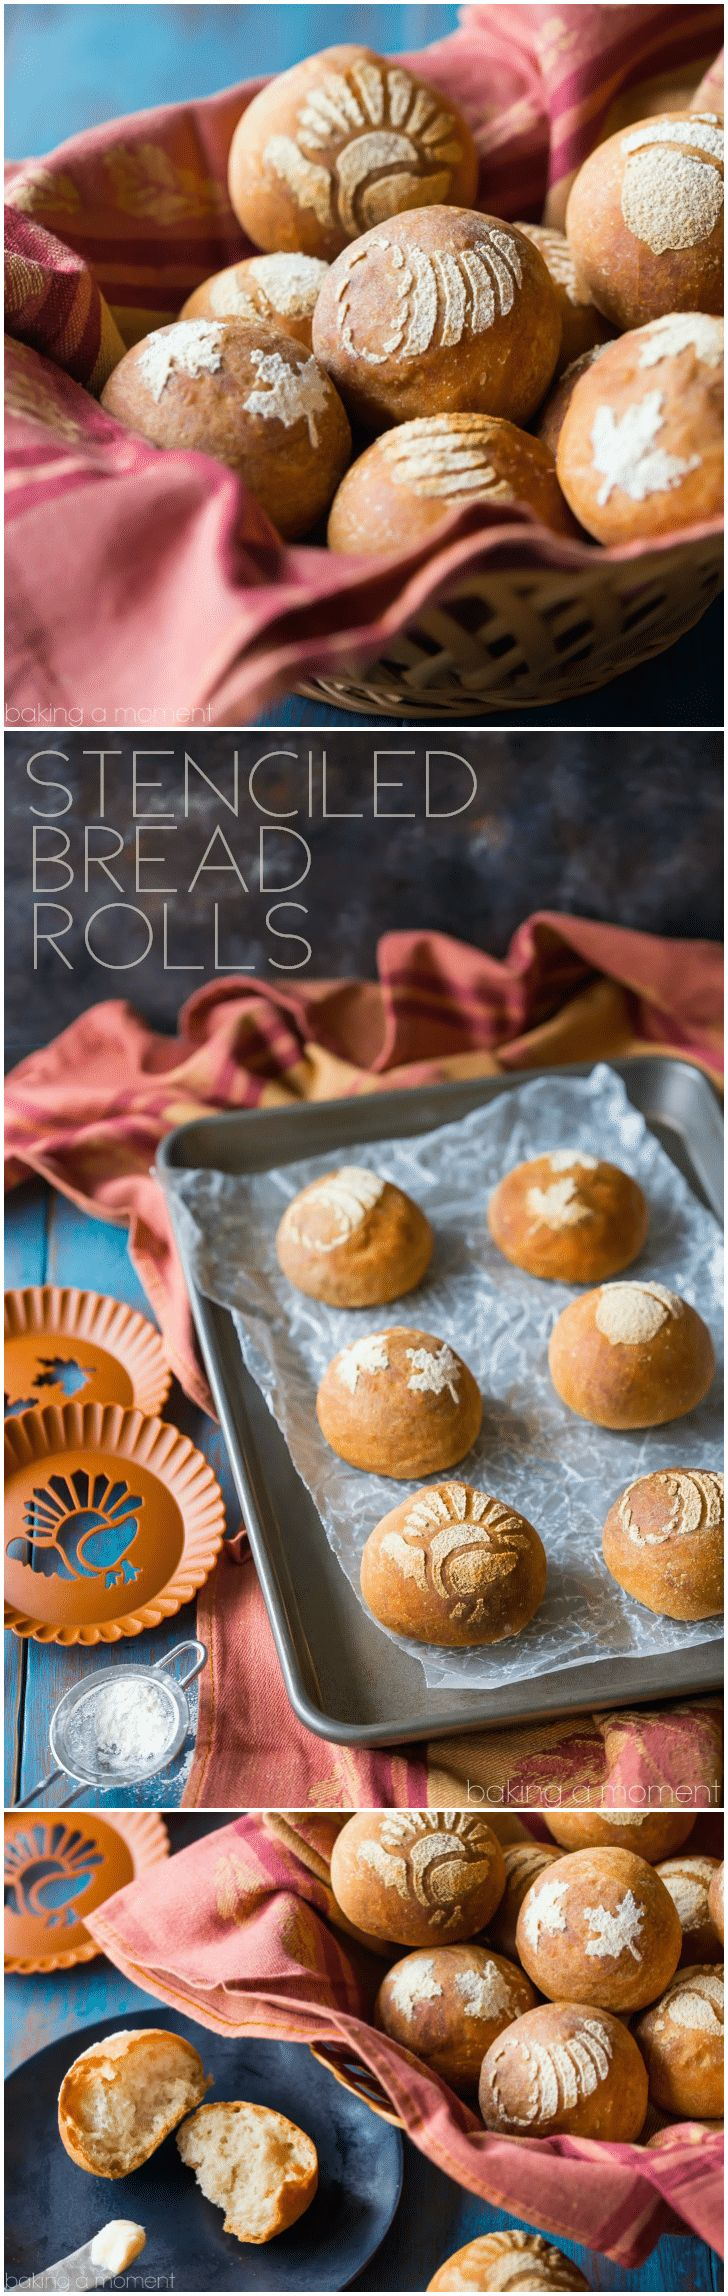 I made these stenciled bread rolls for Thanksgiving and my guests went crazy for them! It was surprisingly easy to do and it made our holiday table even more festive.  food bread crafts via @bakingamoment